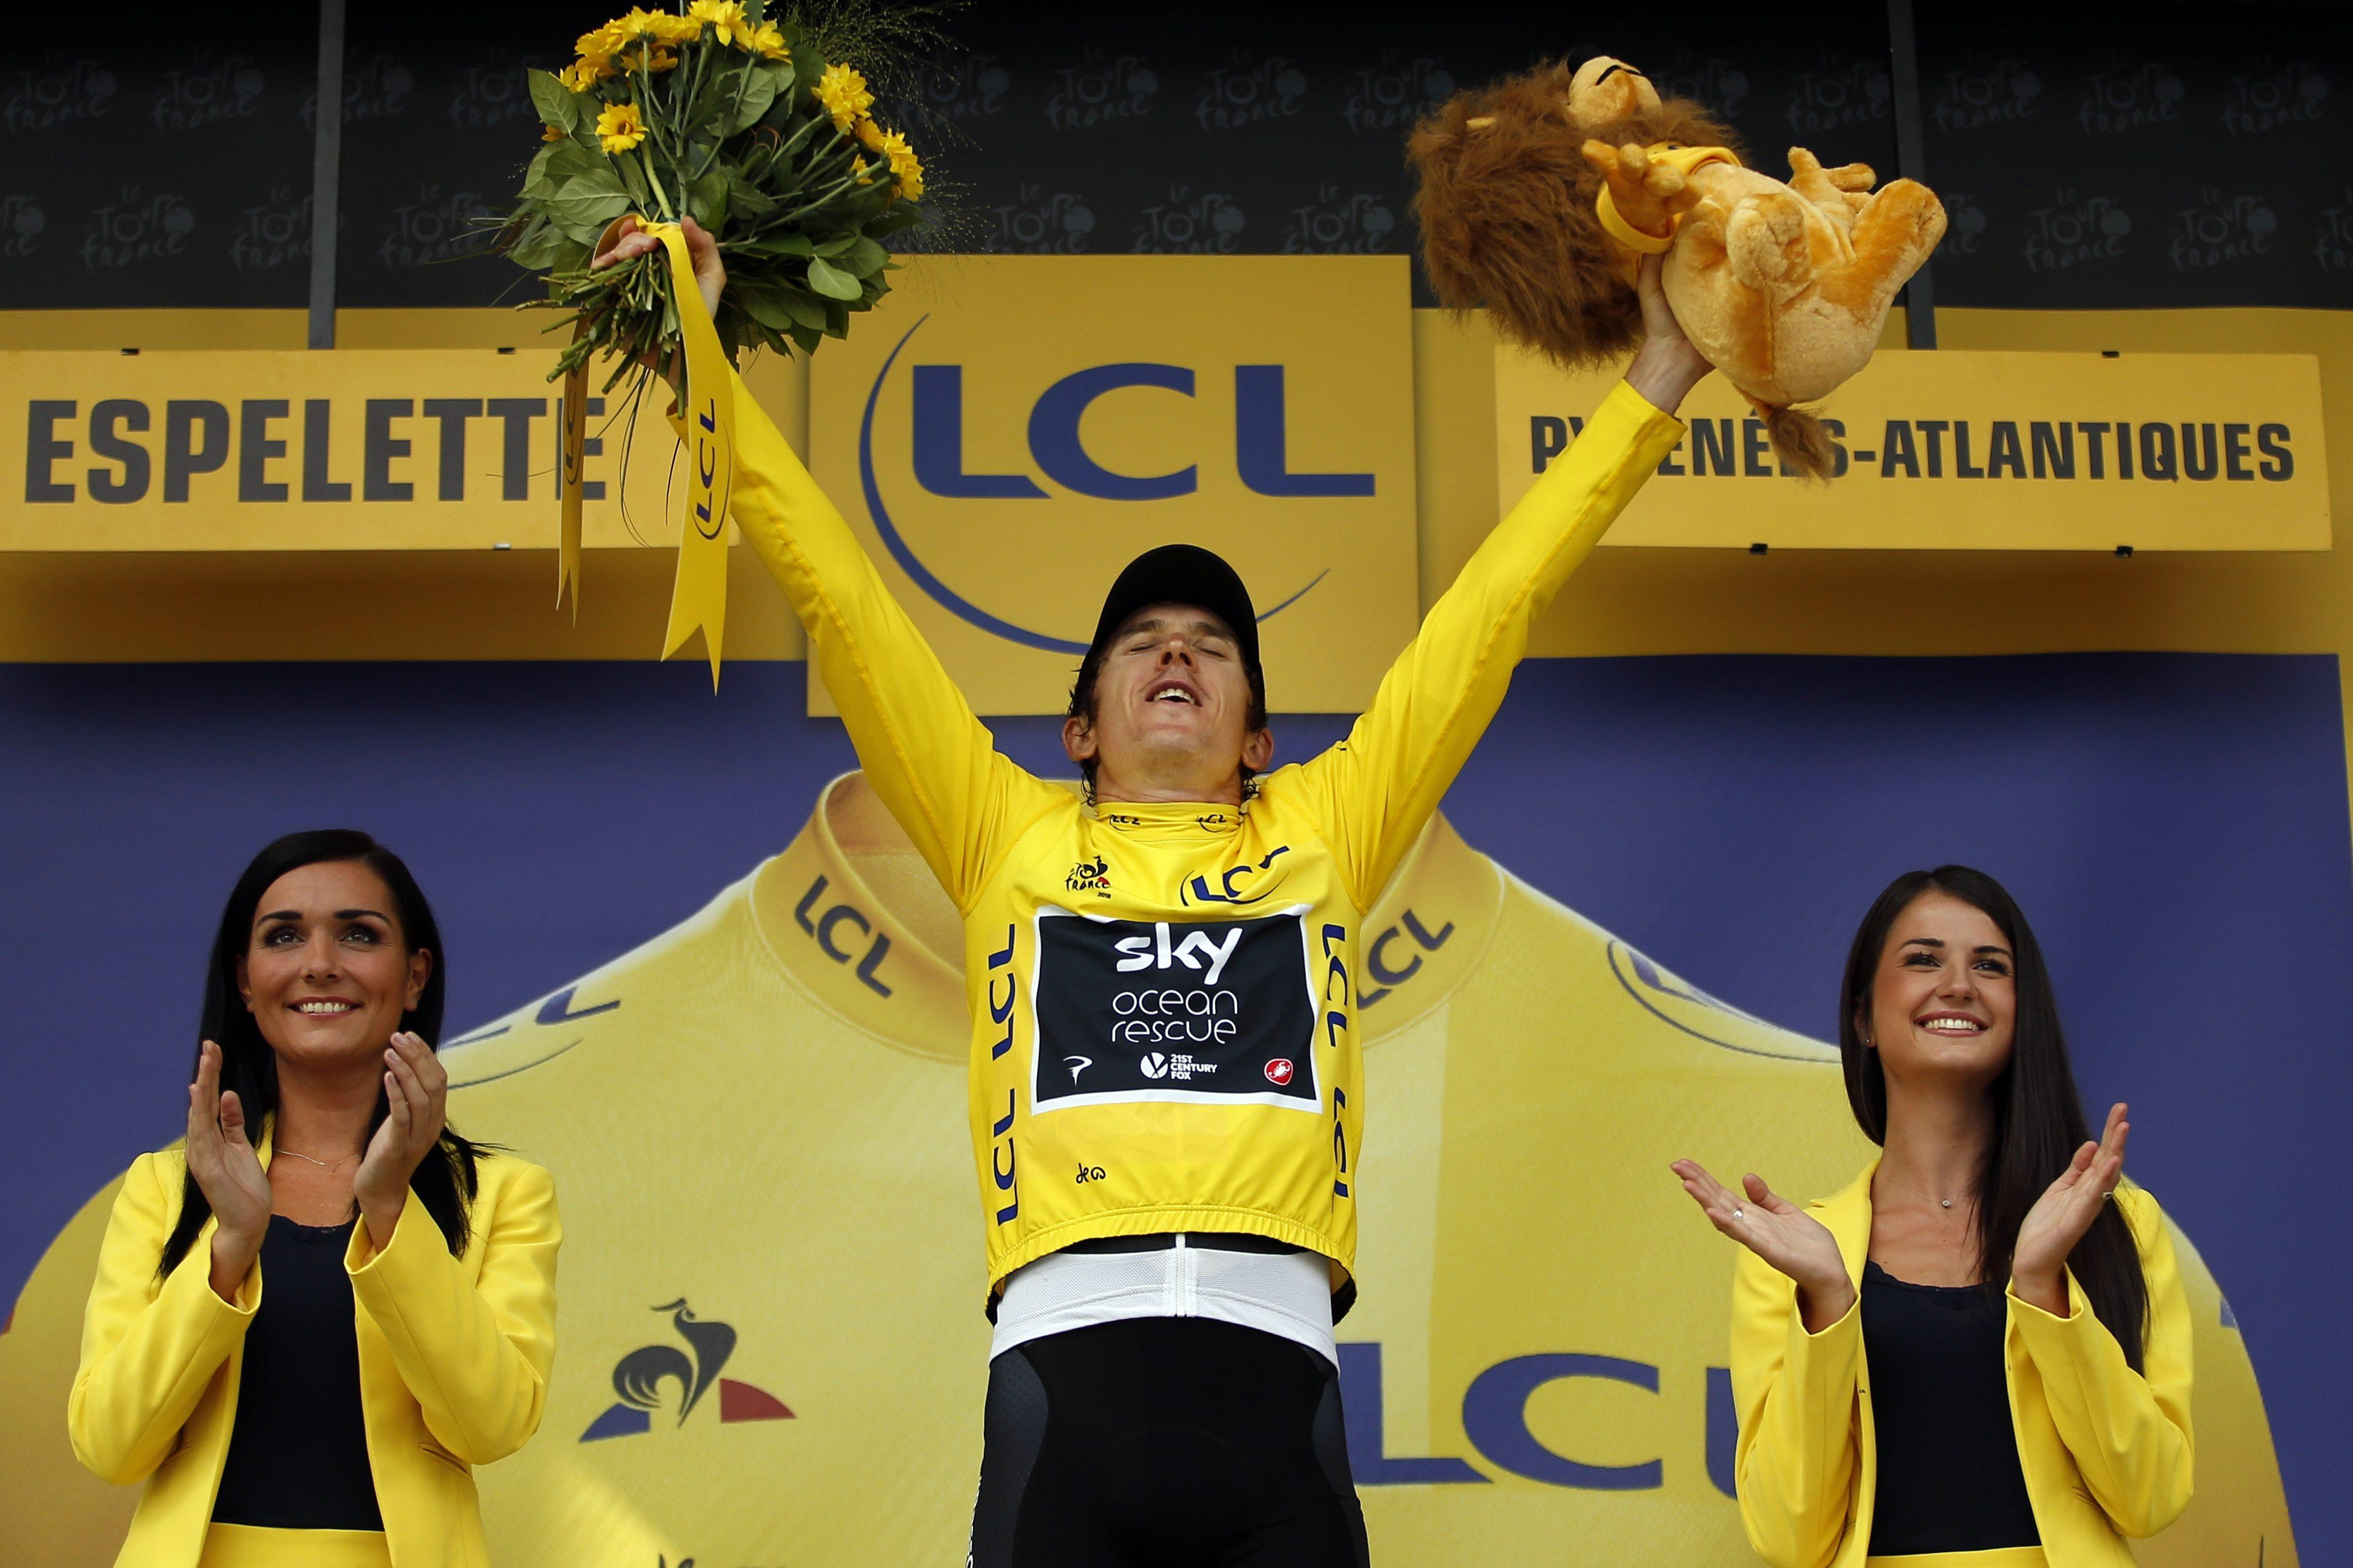 Geraint Thomas celebrates after retaining the yellow jacket after the 20th stage